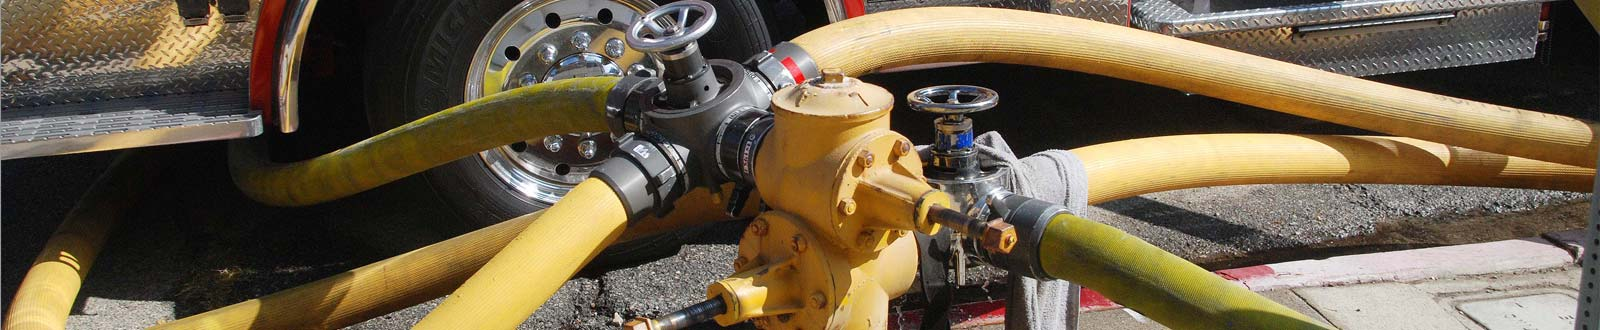 A fire hydrant with hoses attached